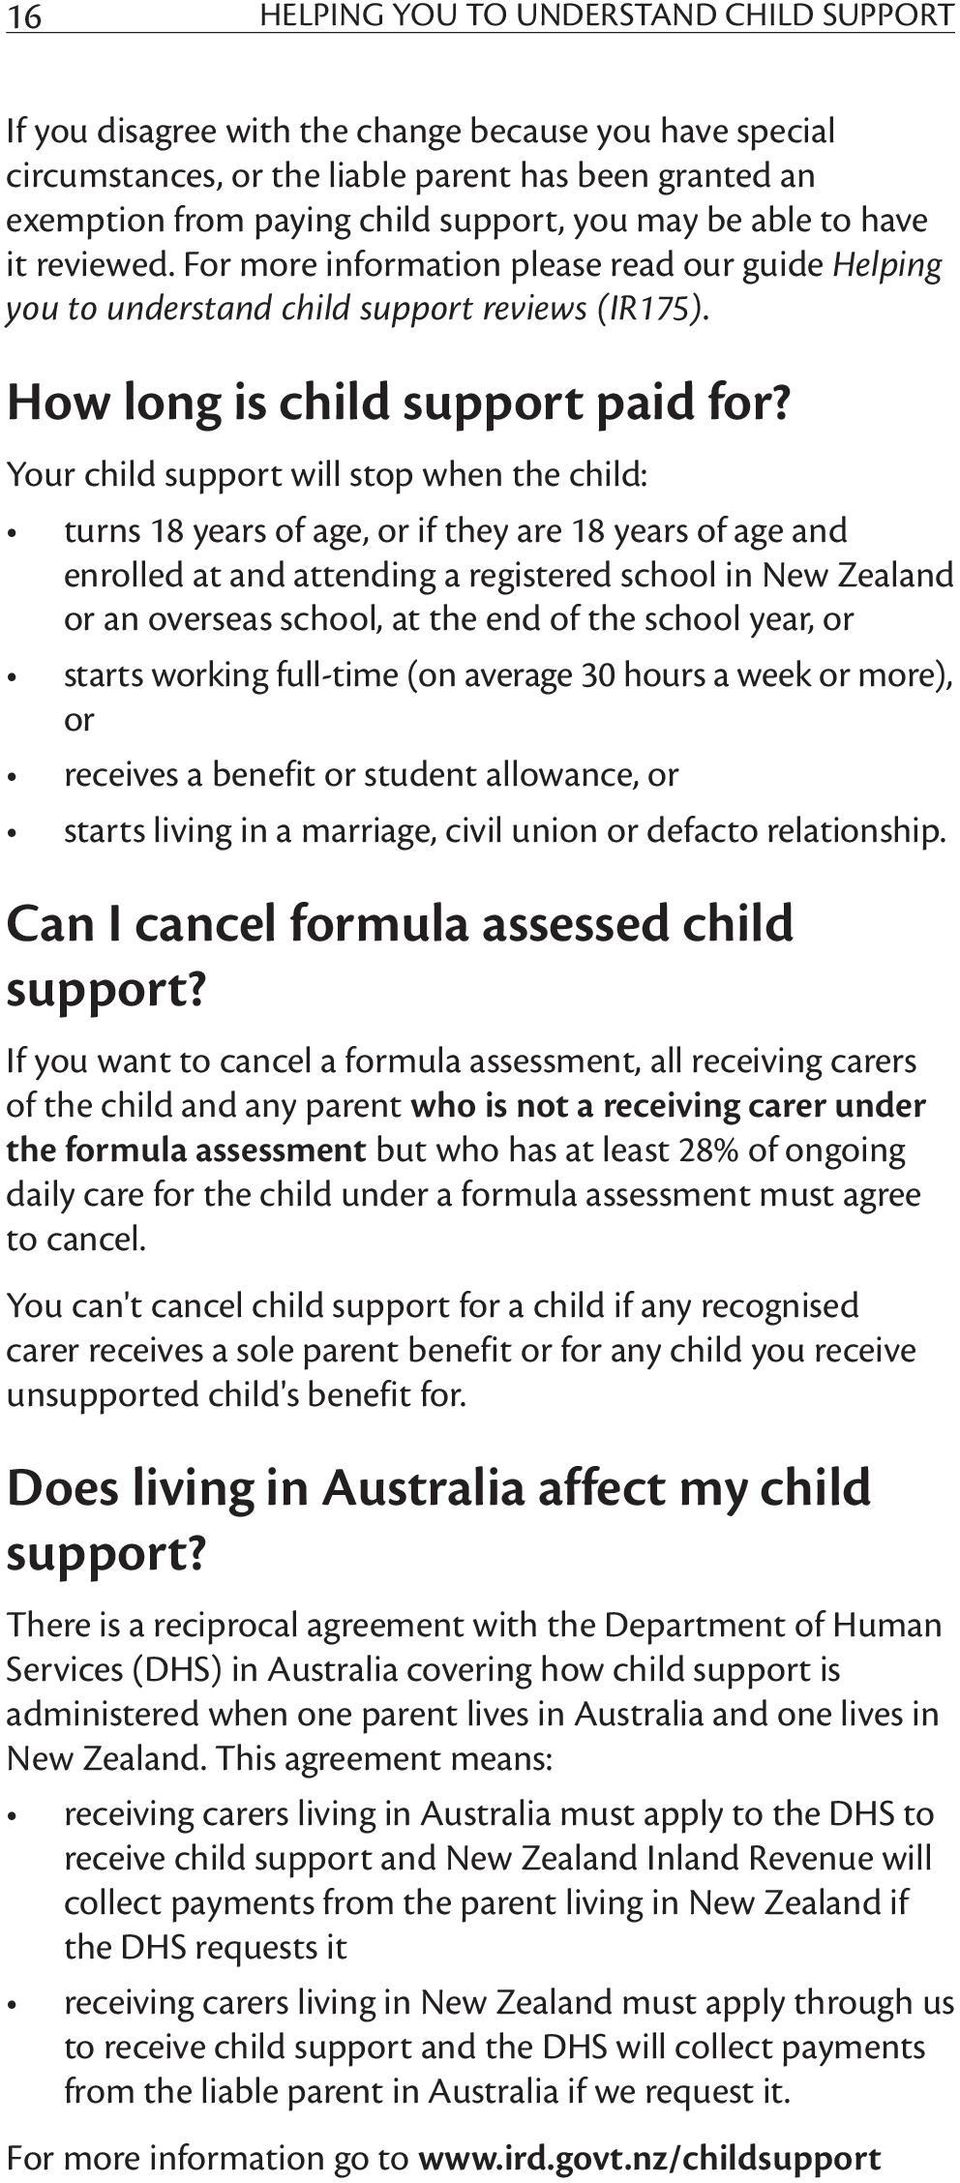 Your child support will stop when the child: turns 18 years of age, or if they are 18 years of age and enrolled at and attending a registered school in New Zealand or an overseas school, at the end